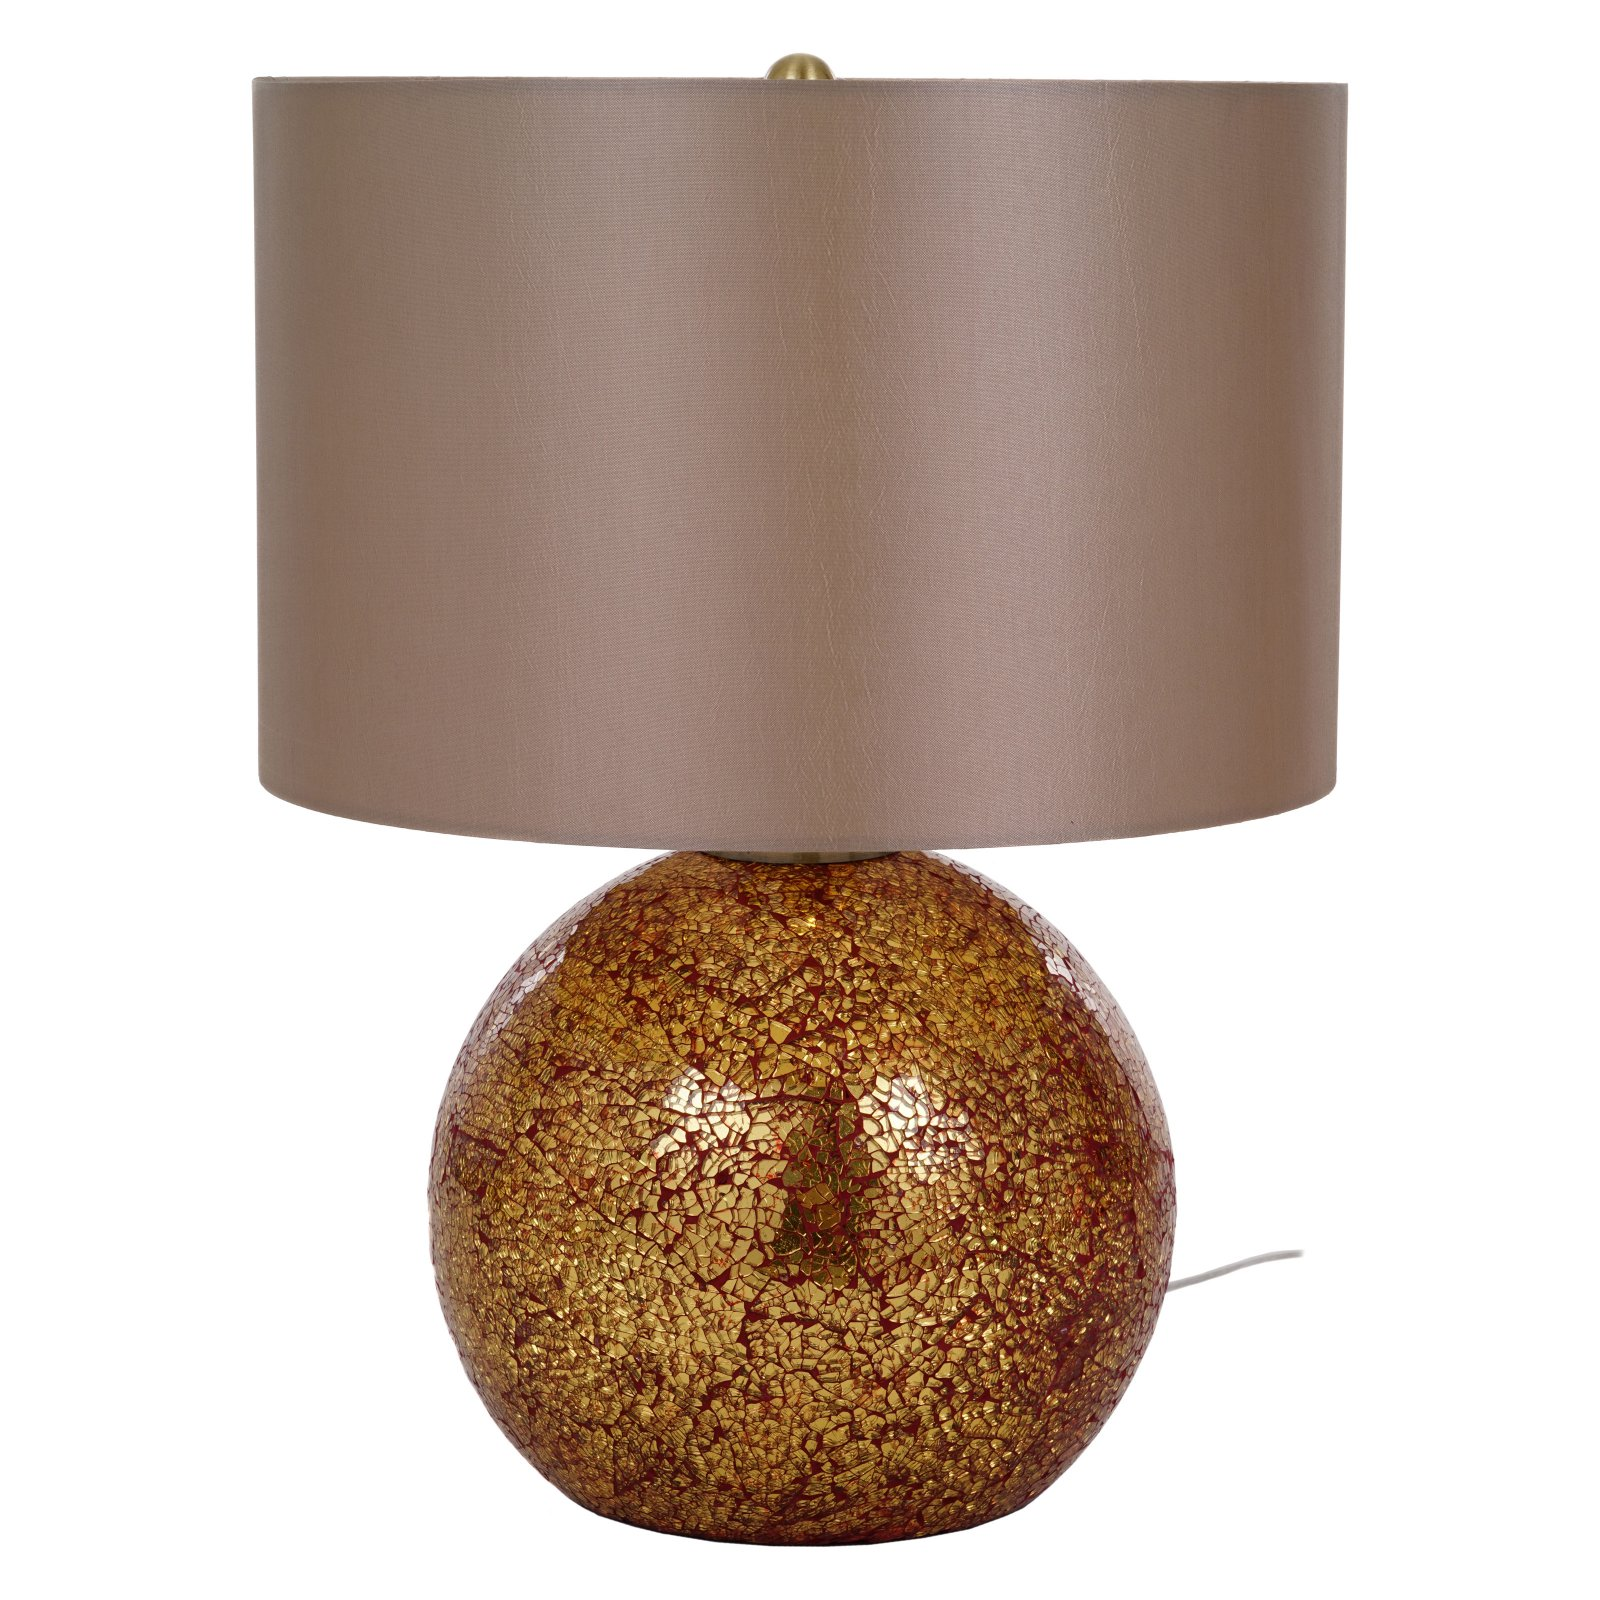 Glass Crackle Lamp Cresswell Lighting Stacey 20 5 In Red Crackle Glass Table Lamp